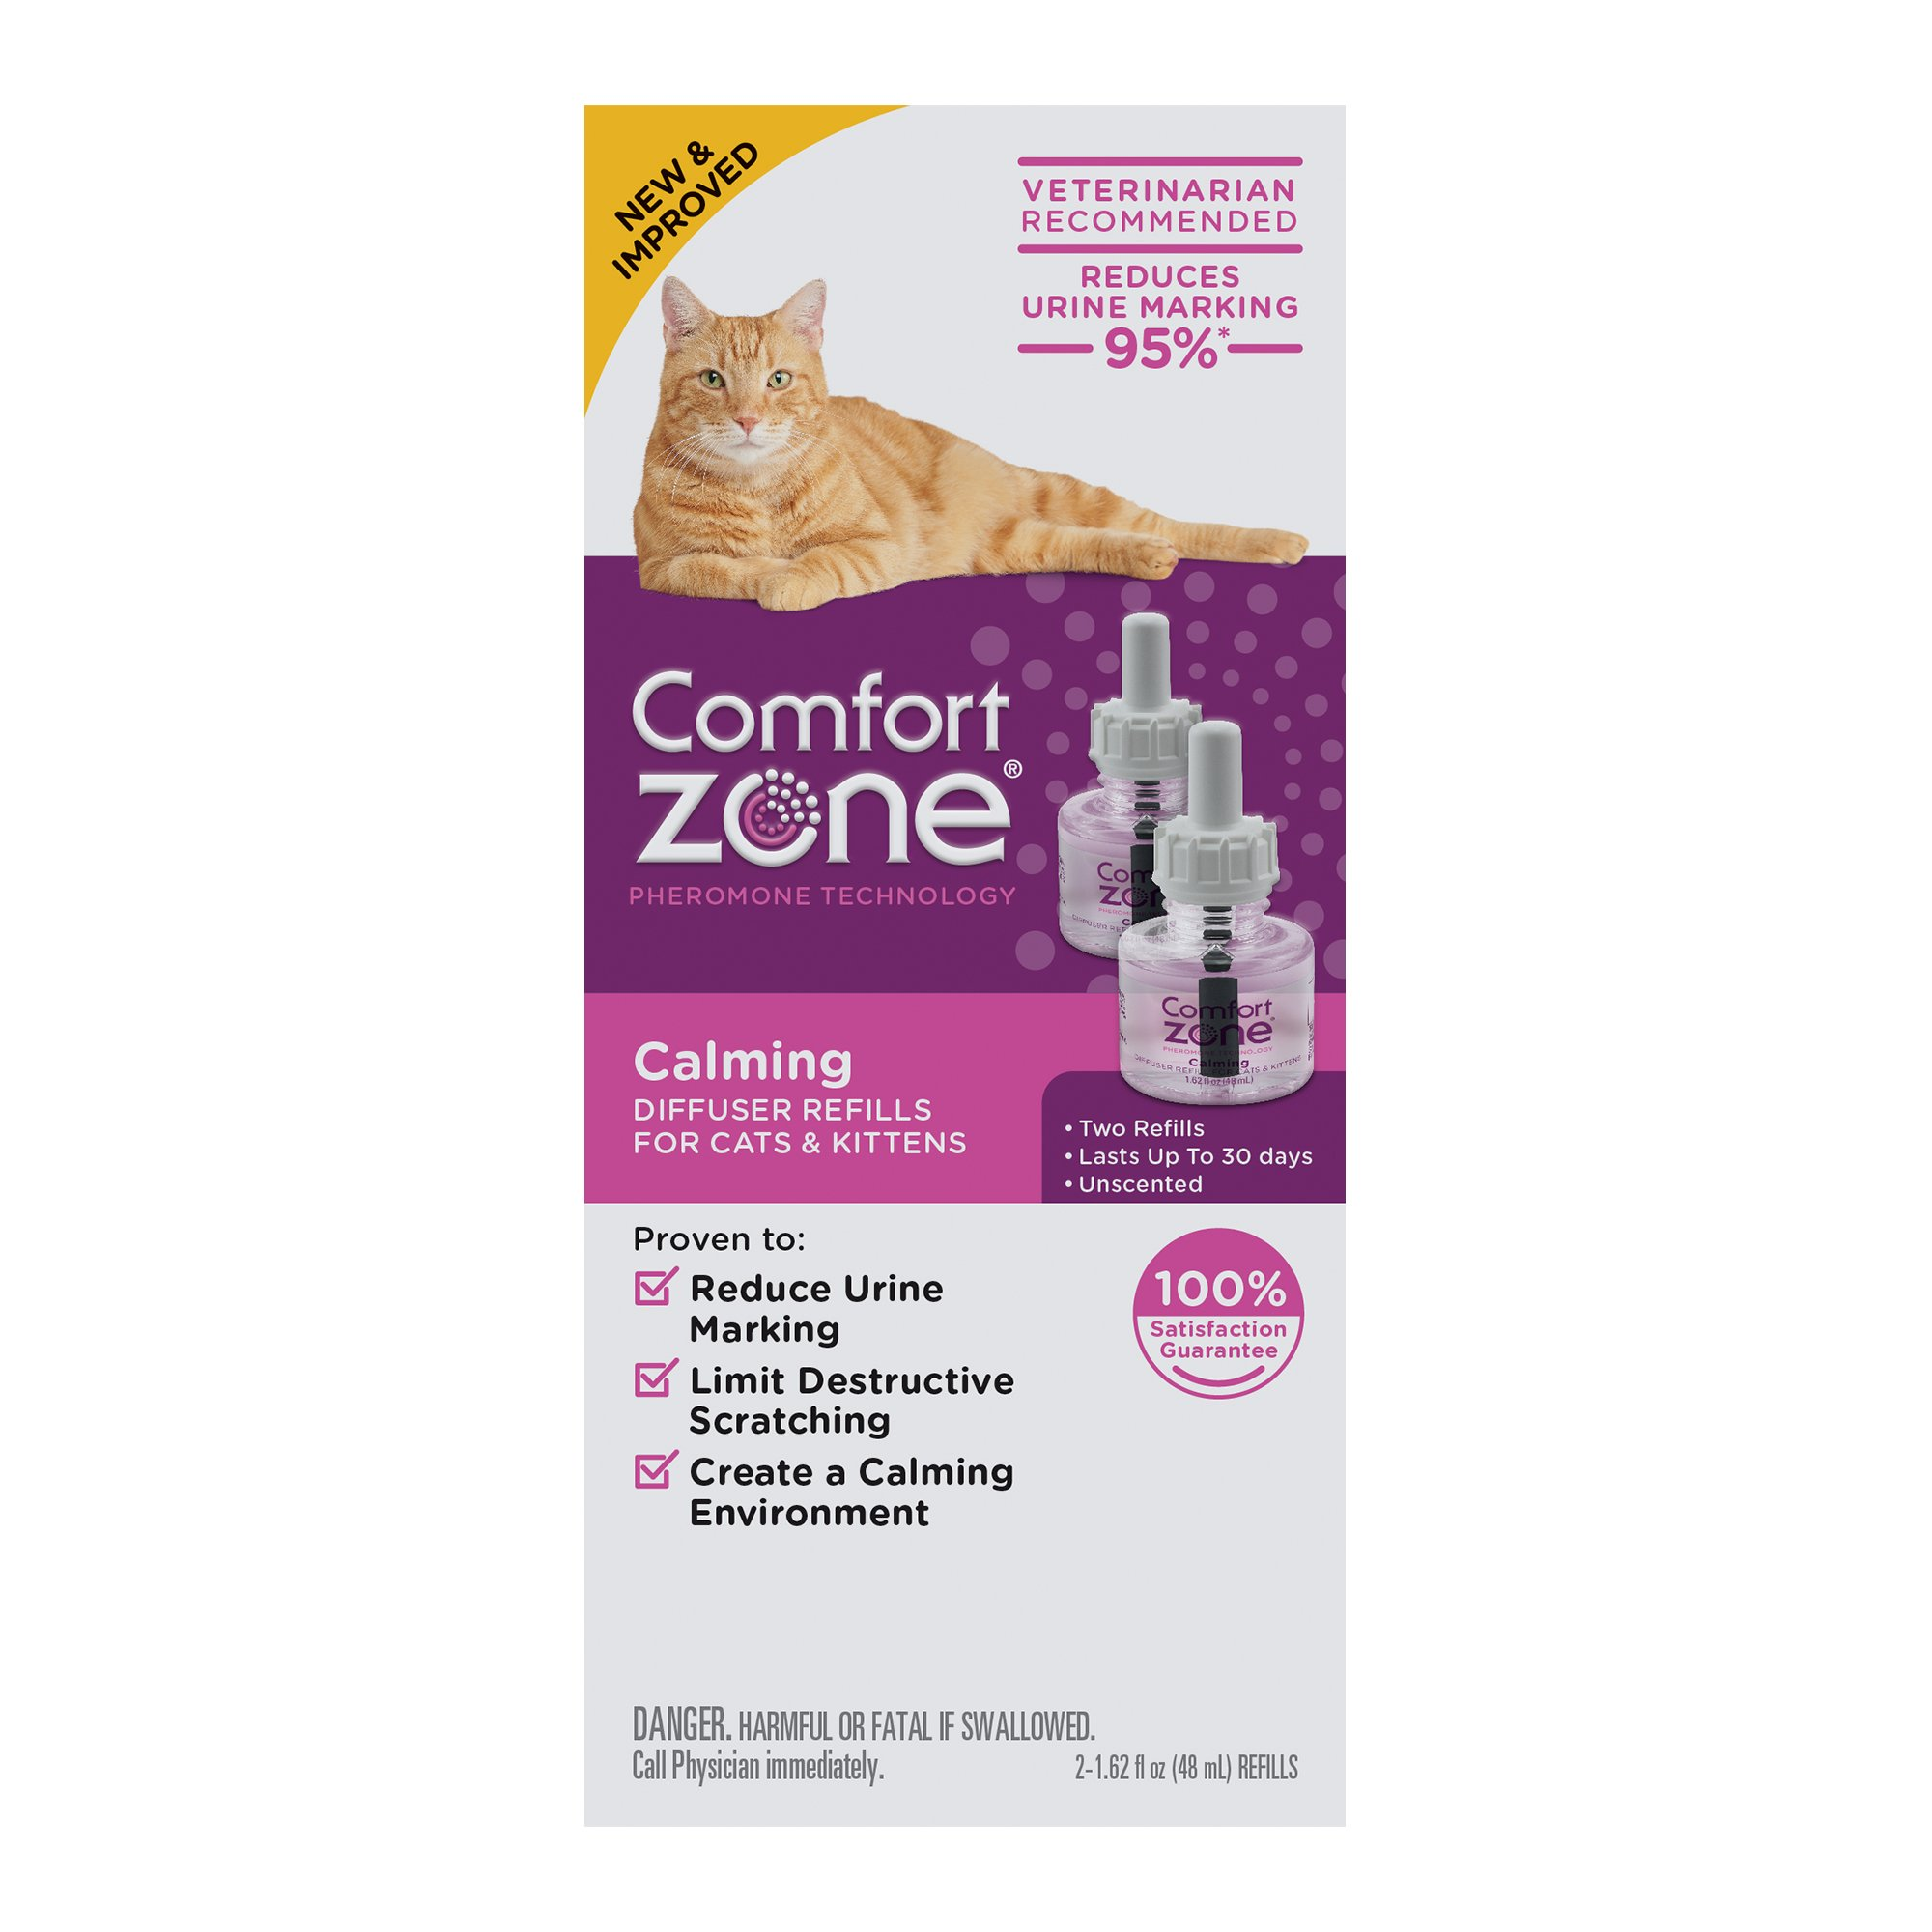 new comforter central introduces goodnewsforpets product press and diffuser release pet zone comfort garden products c shots improved calming